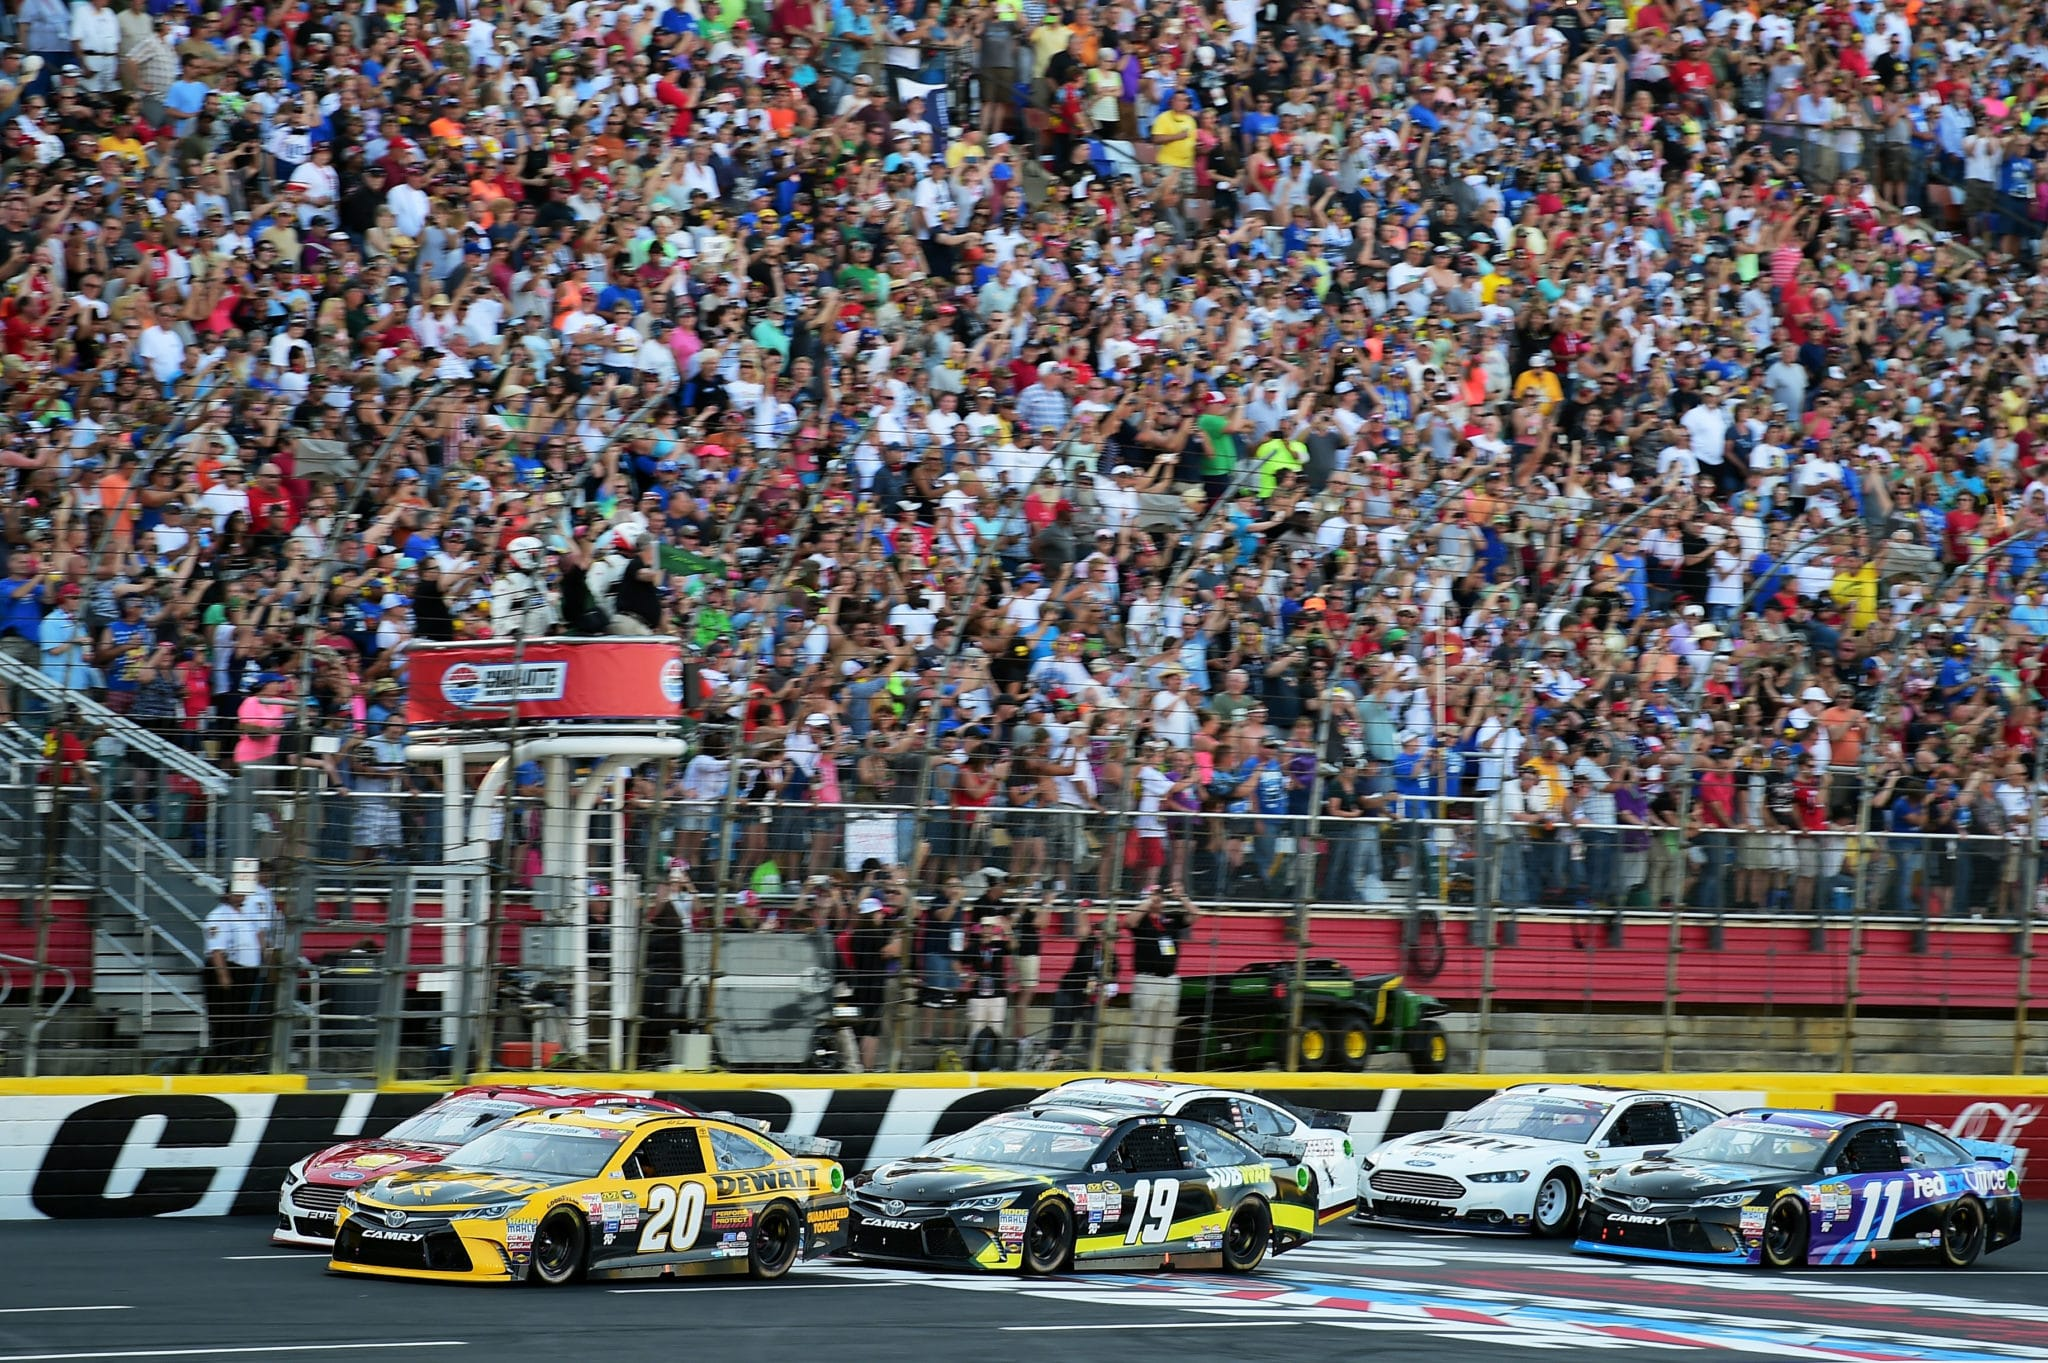 2015 Charlotte I CUP green flag credit NASCAR via Getty Images